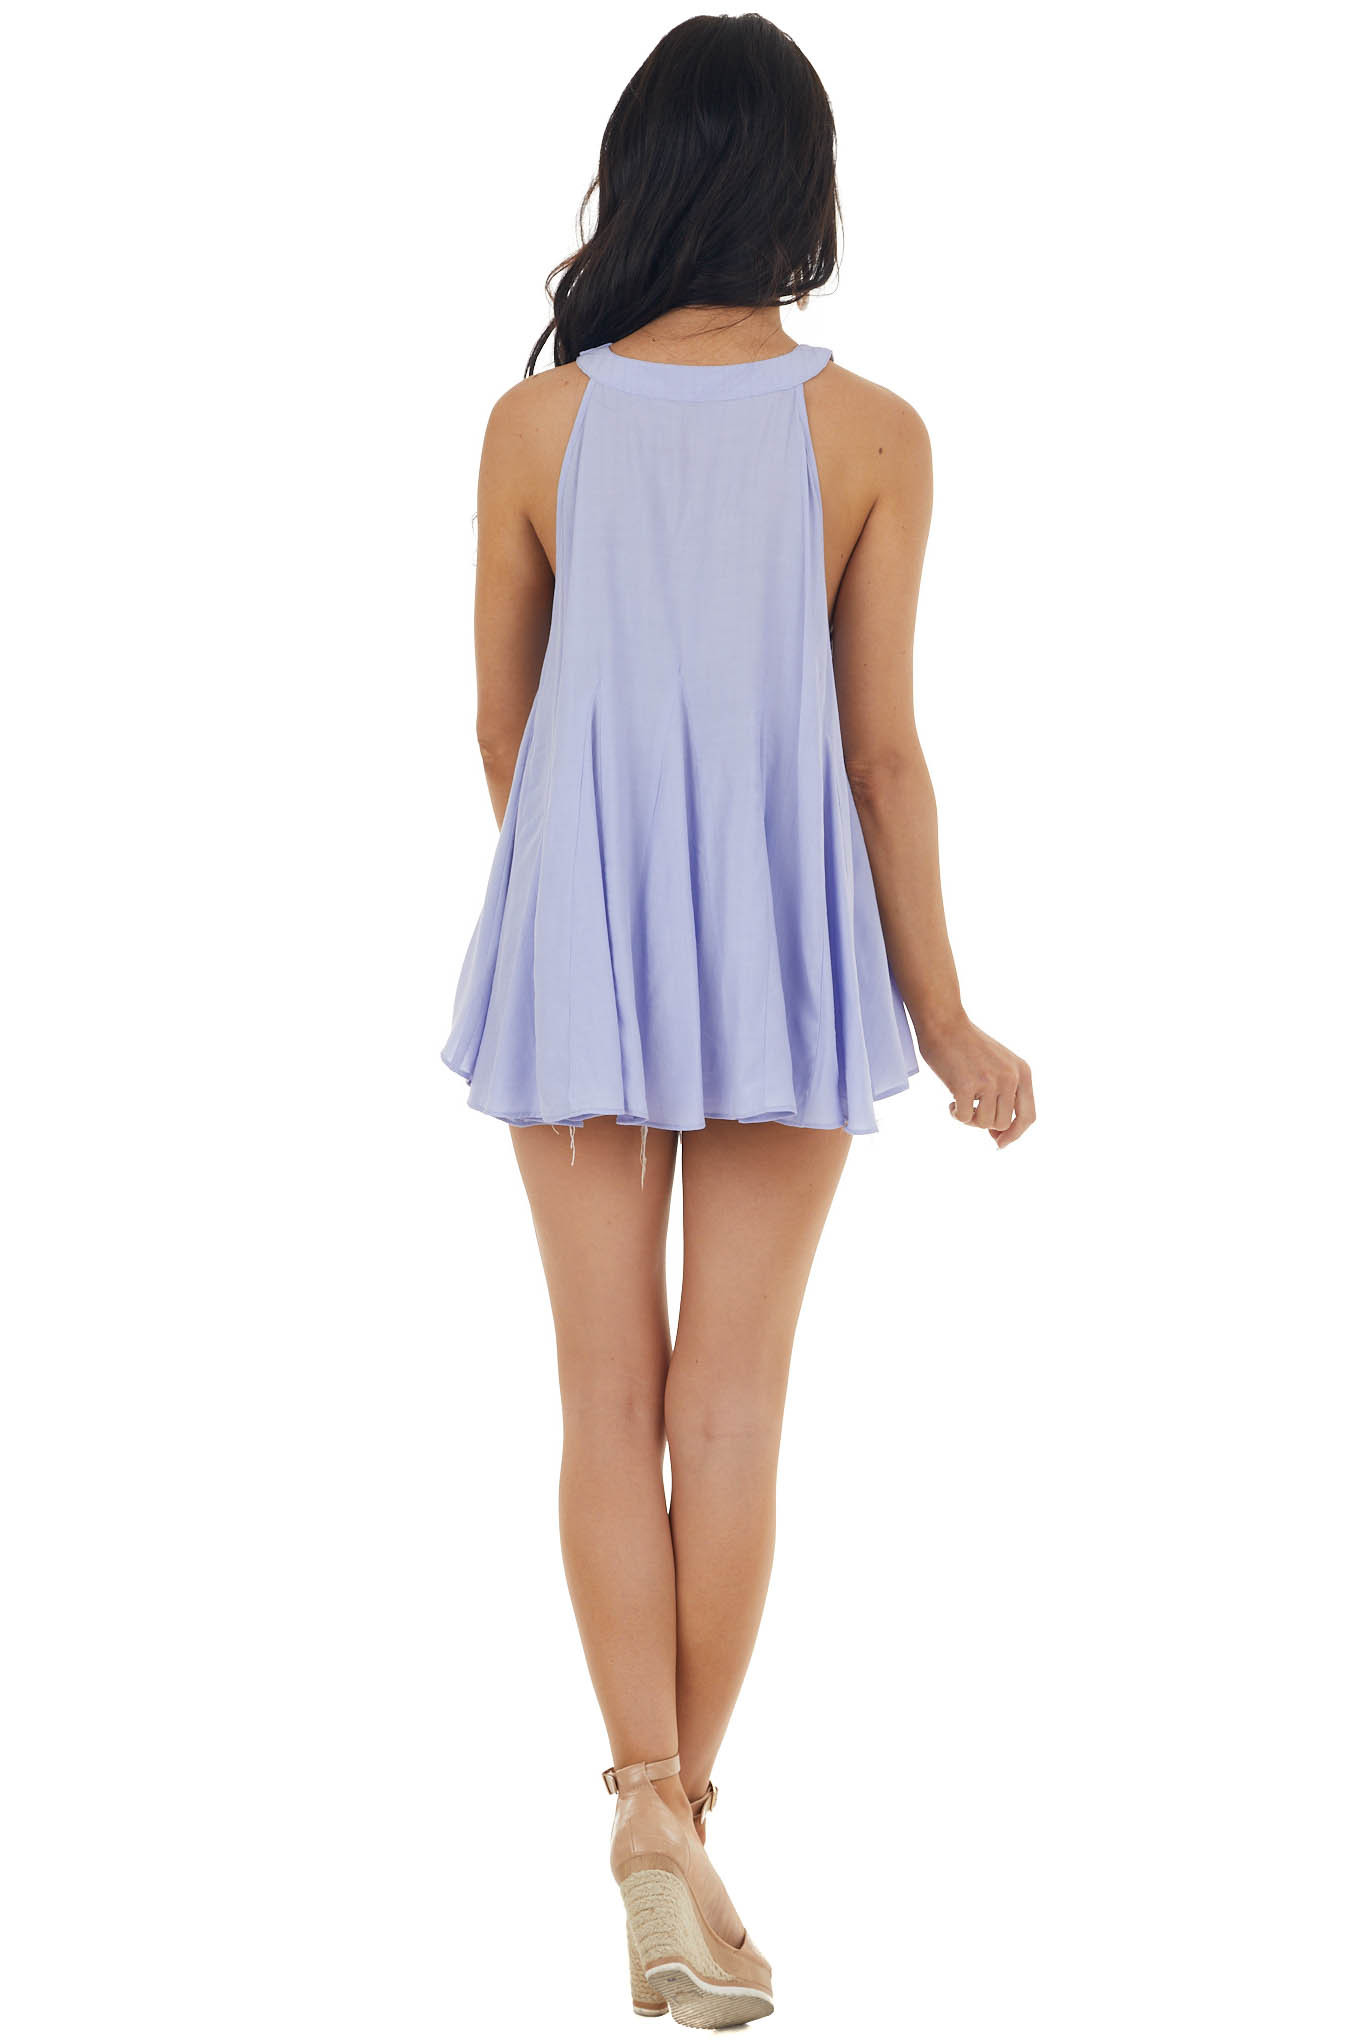 Periwinkle Halter Neck Loose Fit Sleeveless Flare Blouse